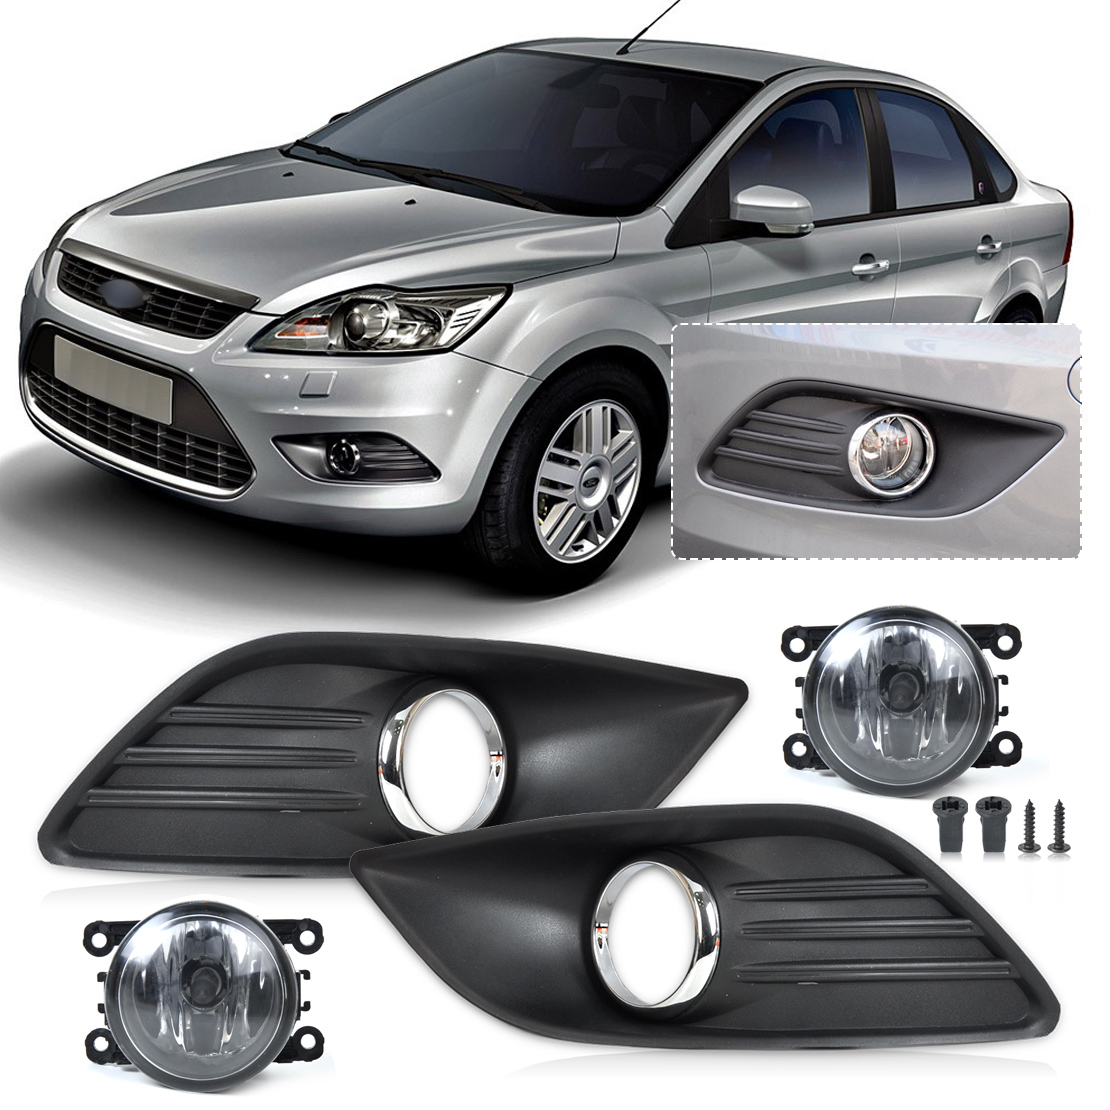 DWCX 2pcs Front Left + Right Side Lower Bumper Fog Light Grille + 2pcs Lamp Kit For Ford Focus Sedan 2009 2010 2011 new original sgdv 120a01a sgmgv 13adc61 200v 1 3kw servo system sgdv 120a01a sgmgv 13adc61